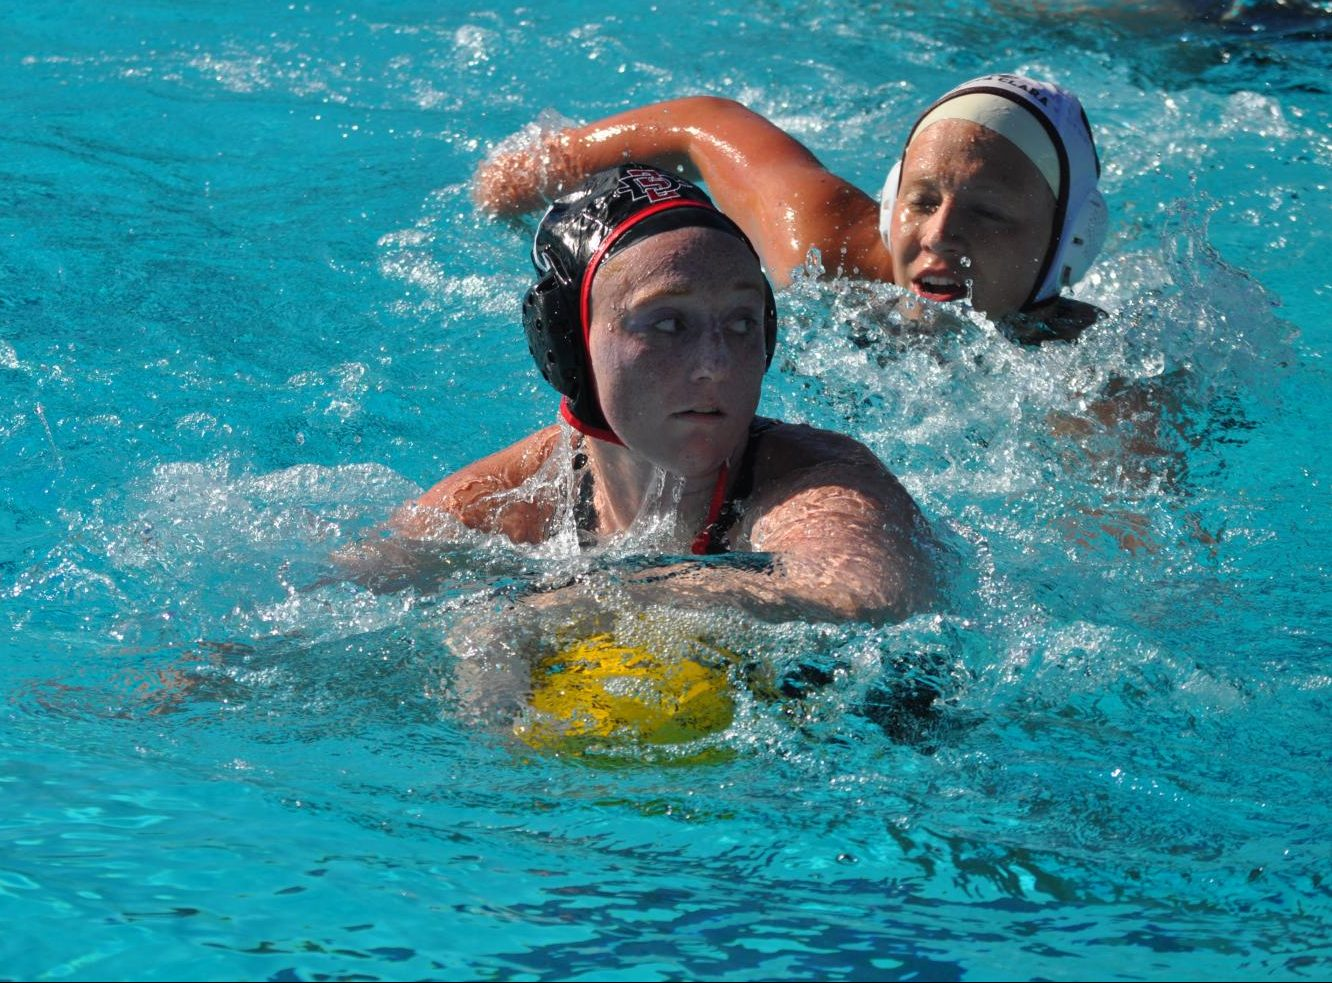 Then-sophomore utility Emily Bennett keeps the ball away from a Santa Clara defender during the Aztecs' 4-1 victory over the Broncos on March 28, 2019 at the Aztec Aquaplex.